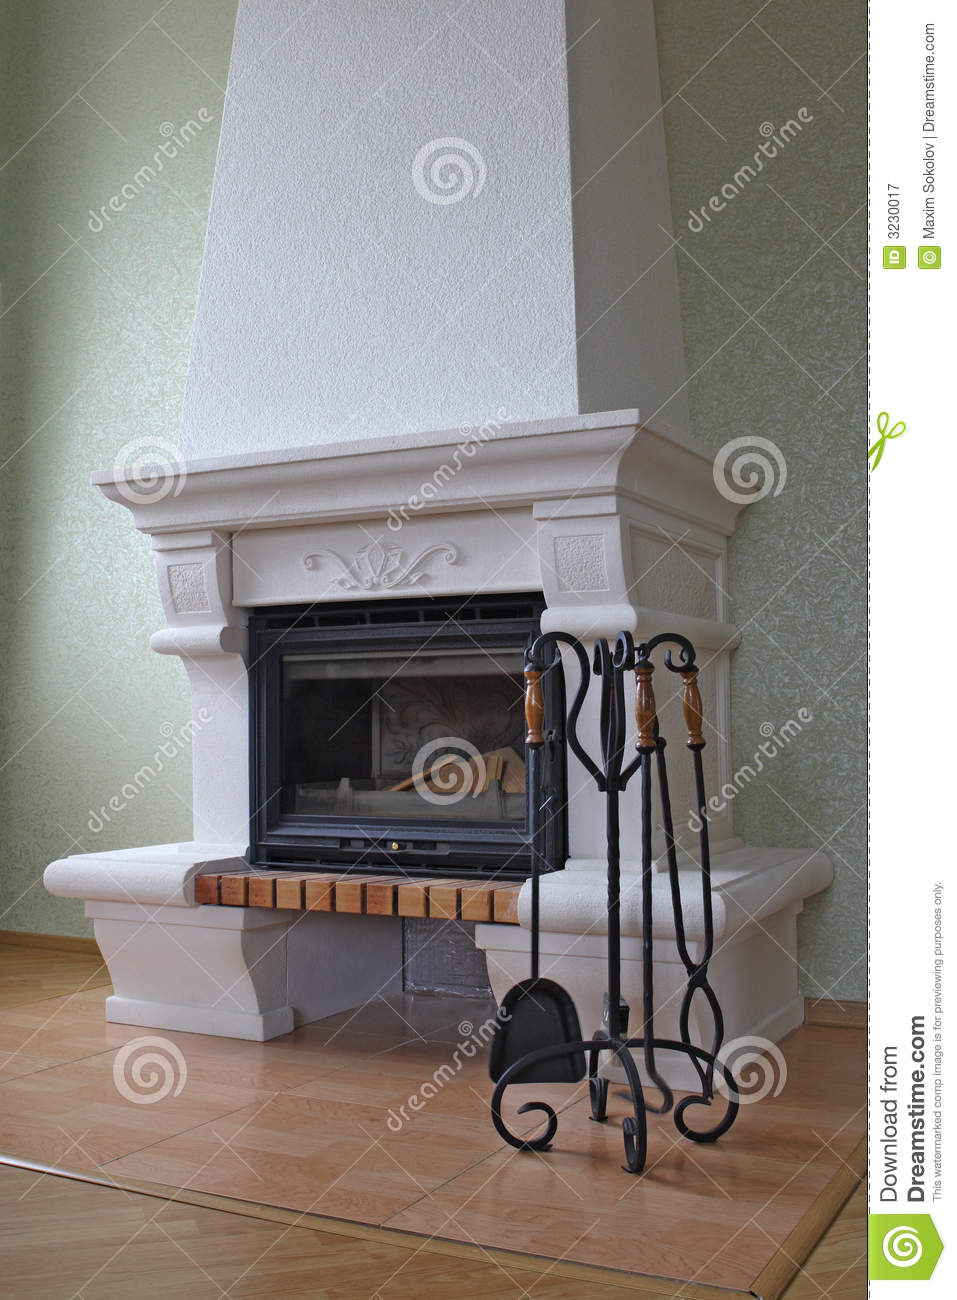 Fireplace Without Fire Stock Image Image Of Room Fireplace 3230017